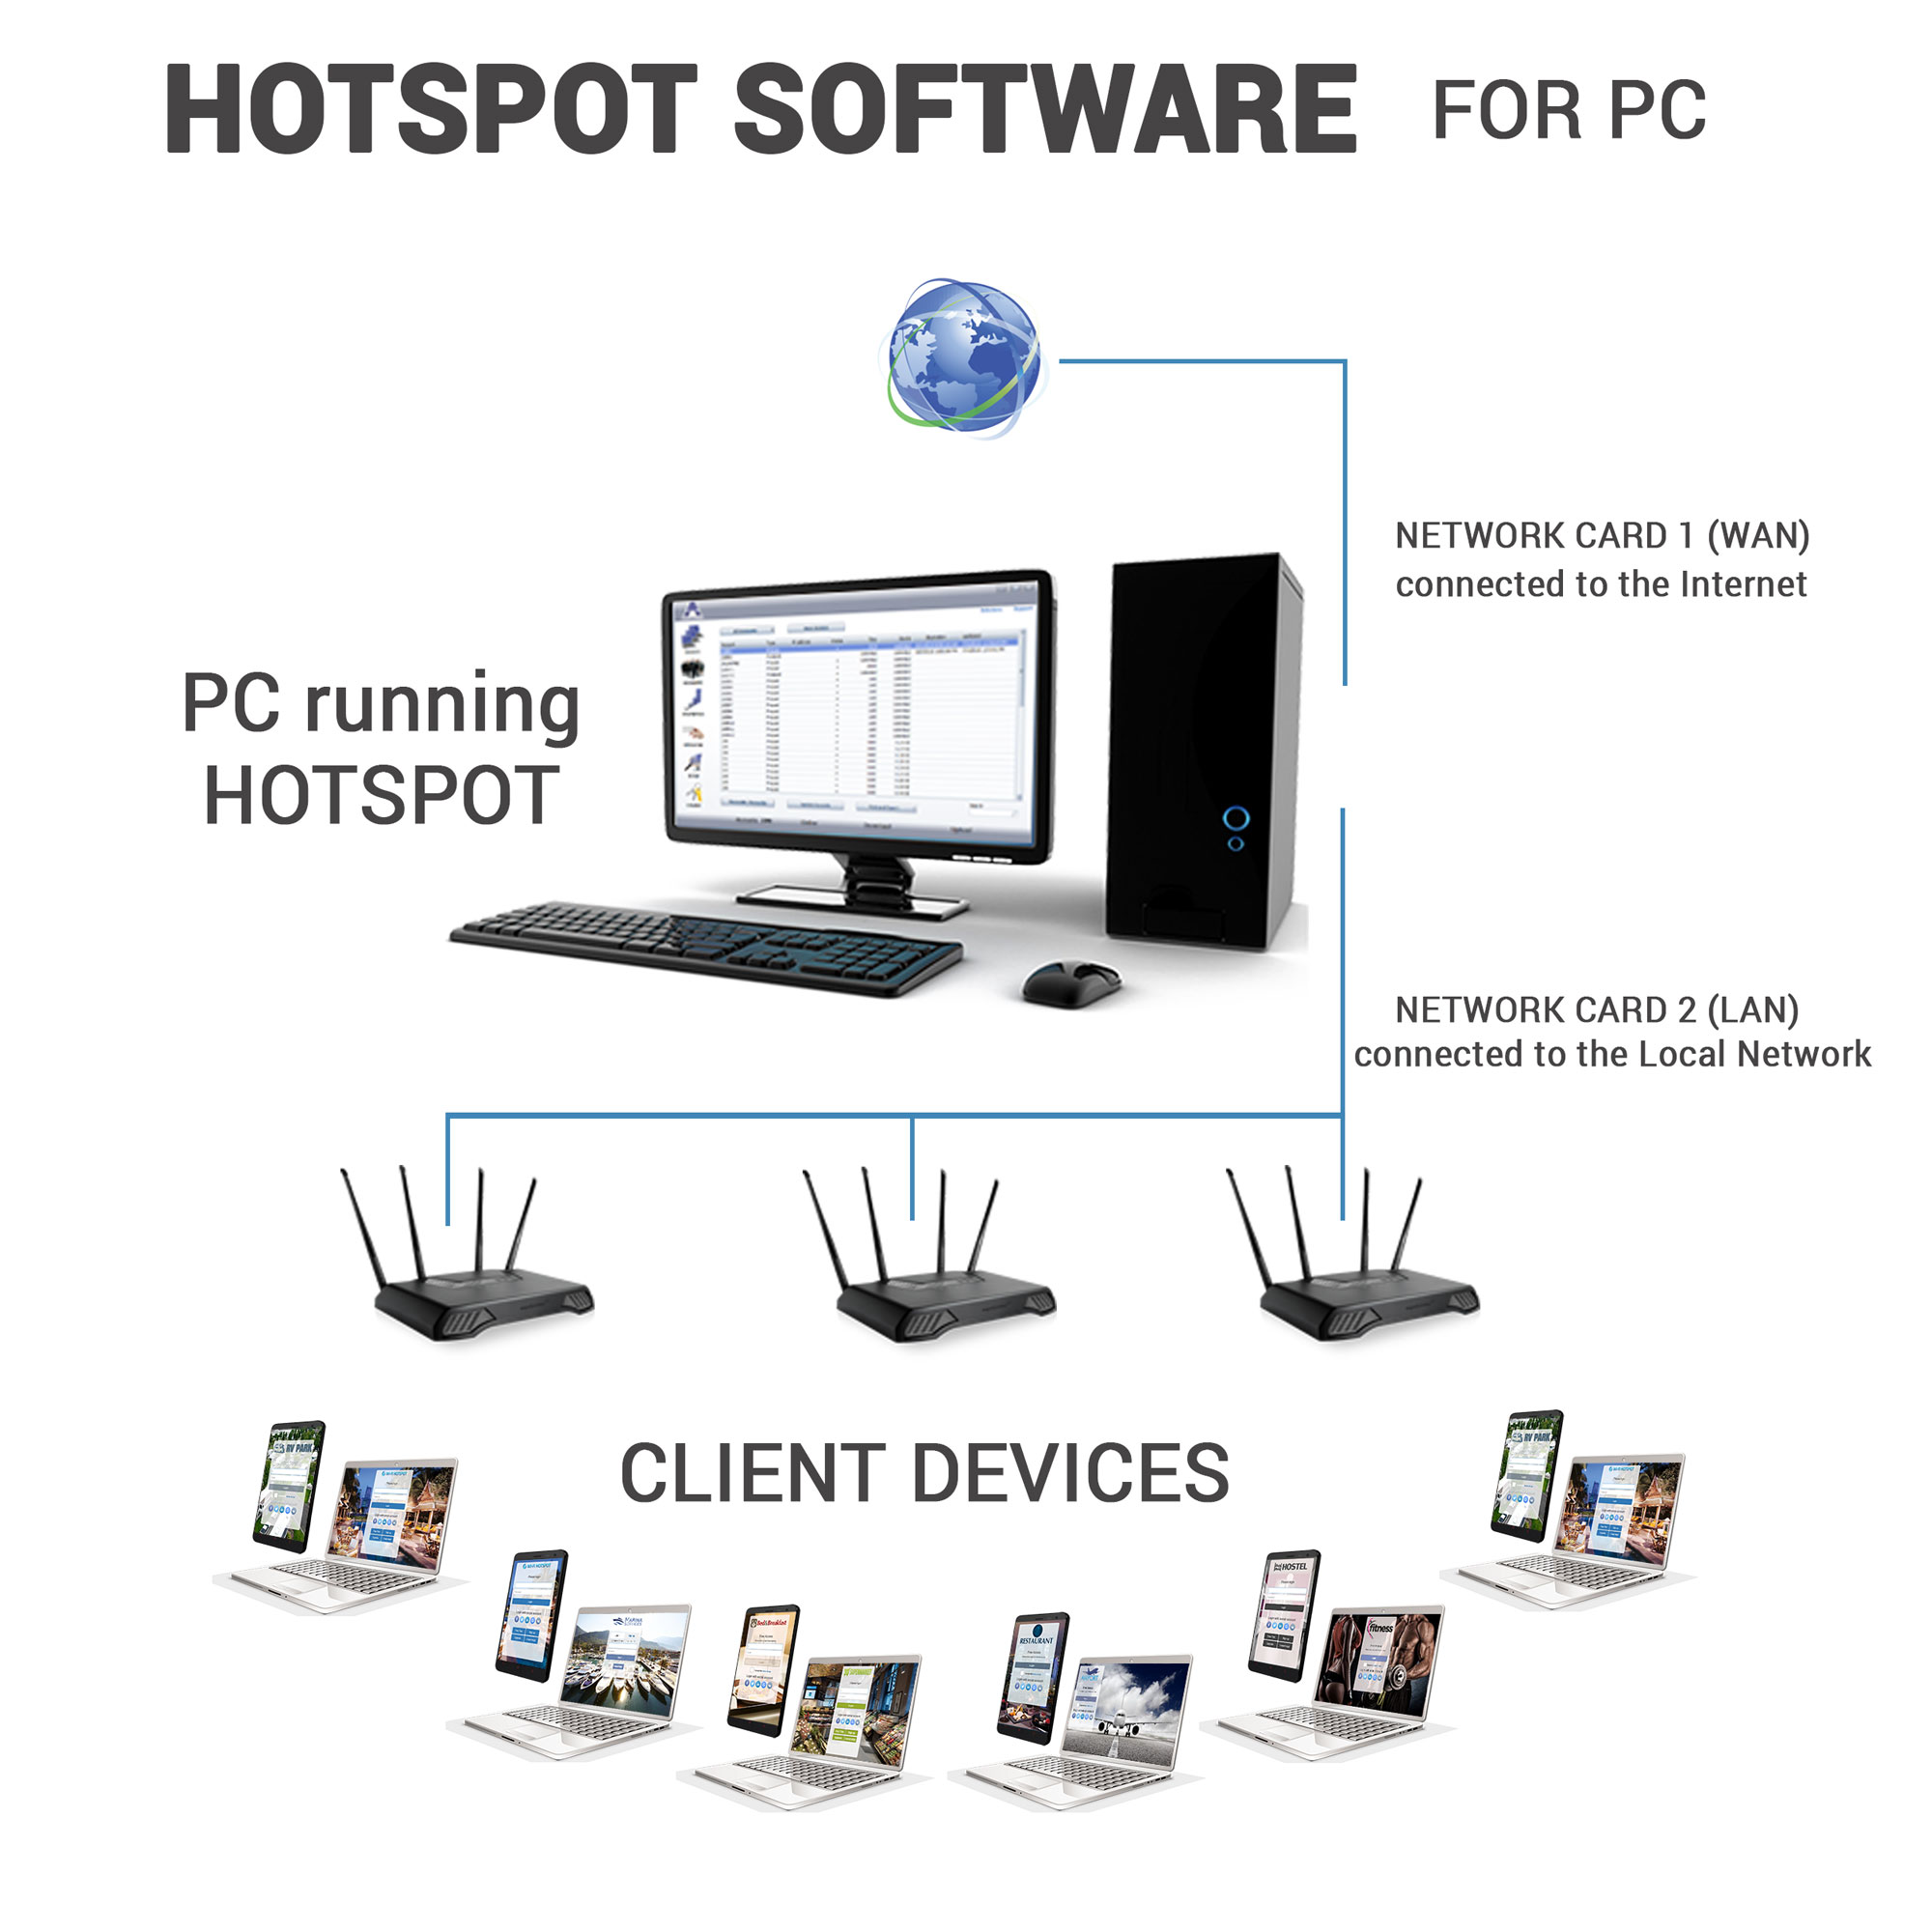 Compare HotSpot PC software